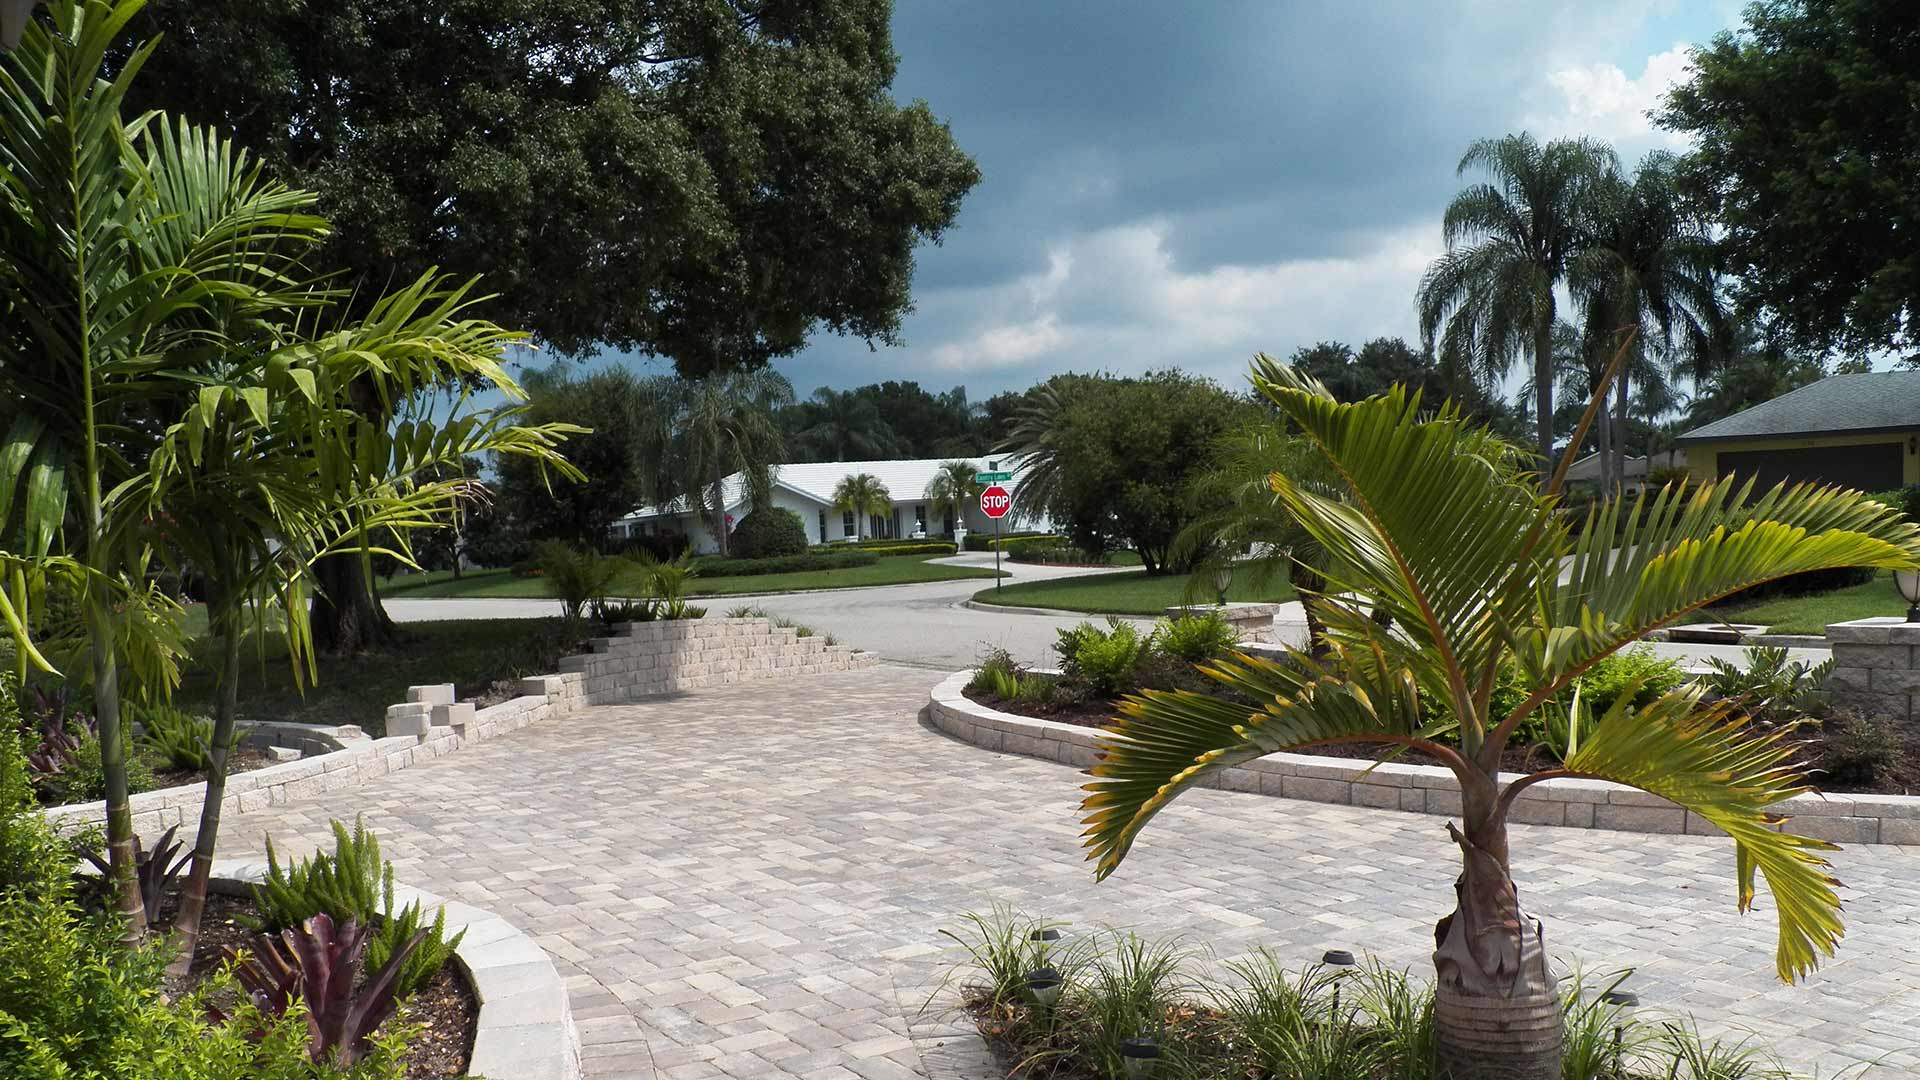 Landscape maintenance around palm trees at a Lakewood Ranch, FL property.